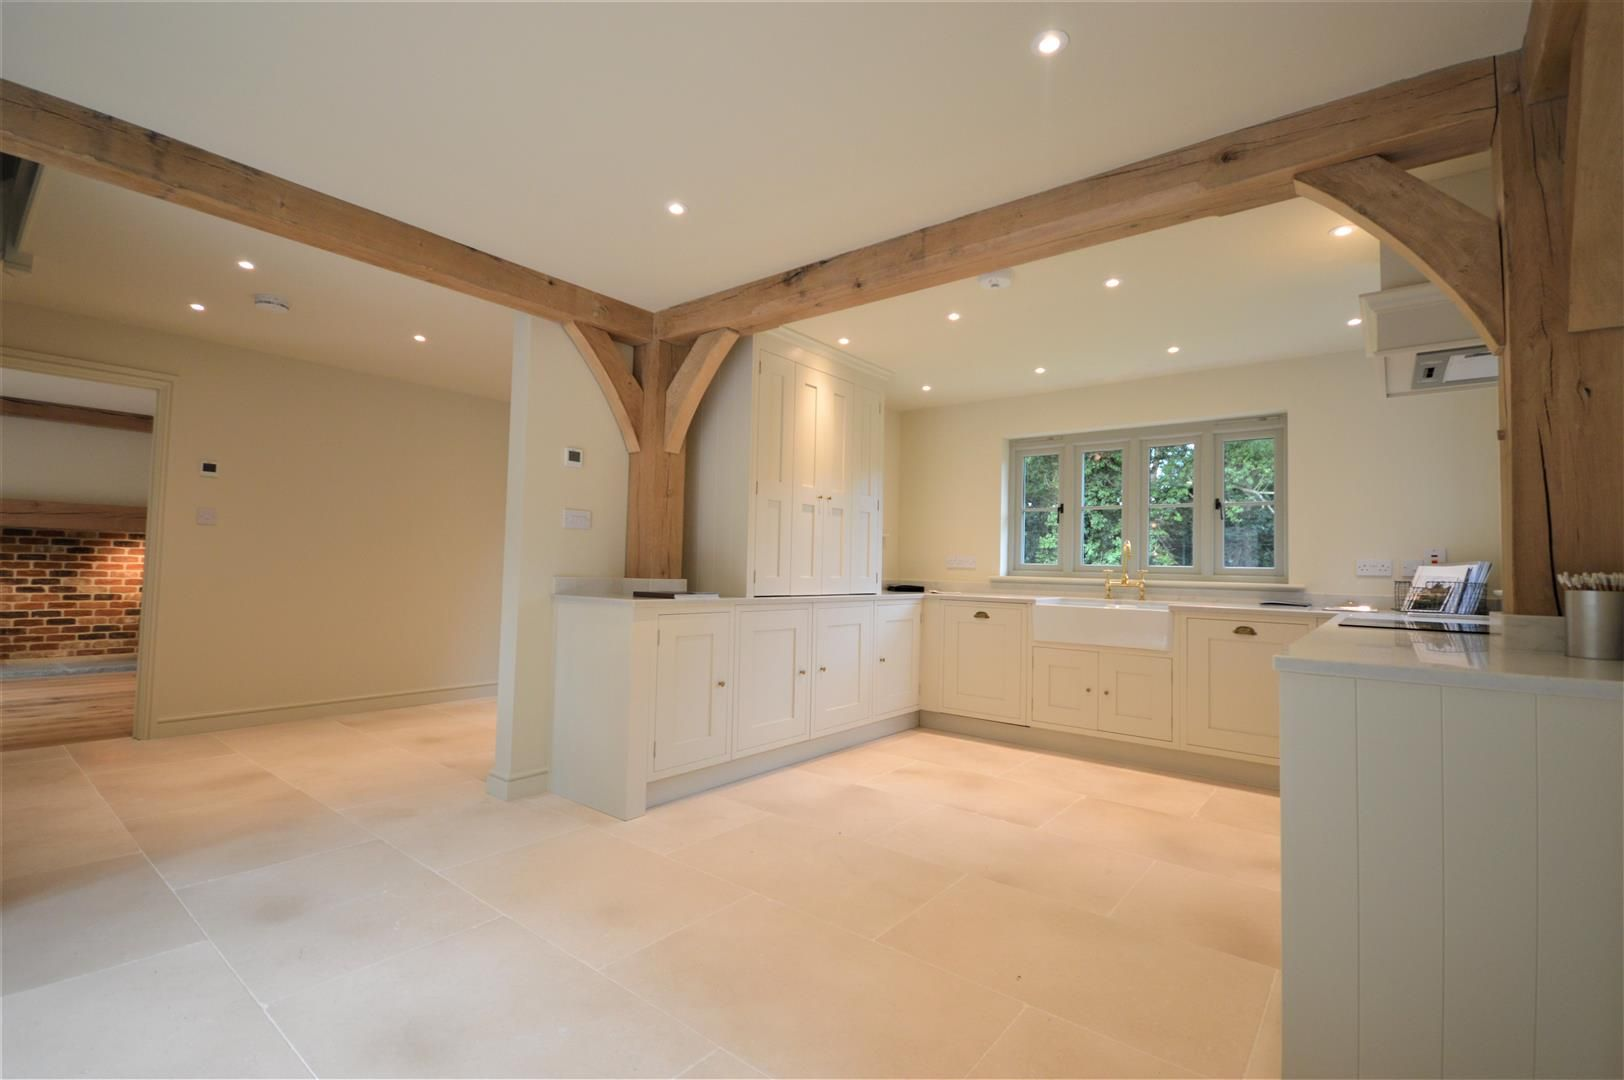 3 bed detached for sale in Dilwyn  - Property Image 3